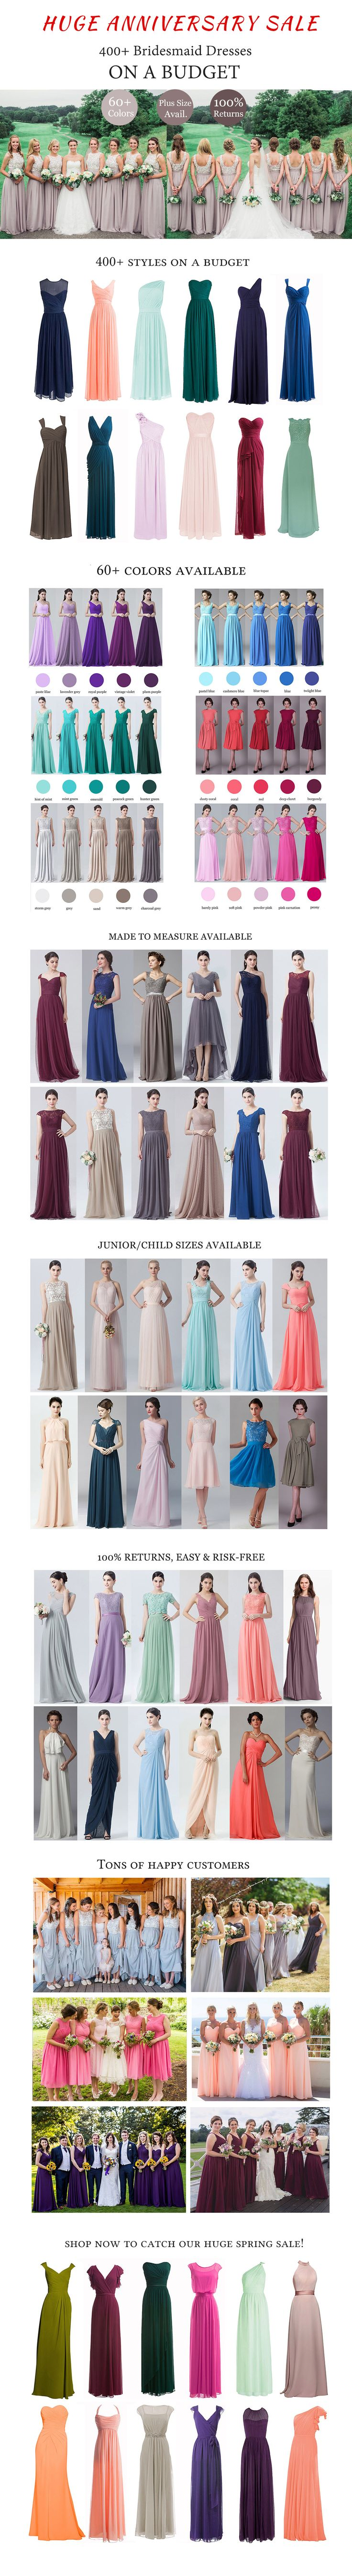 HUGE ANNIVERSARY SALE on ALL FHFH bridesmaid dresses! ONLY IN AUGUST!